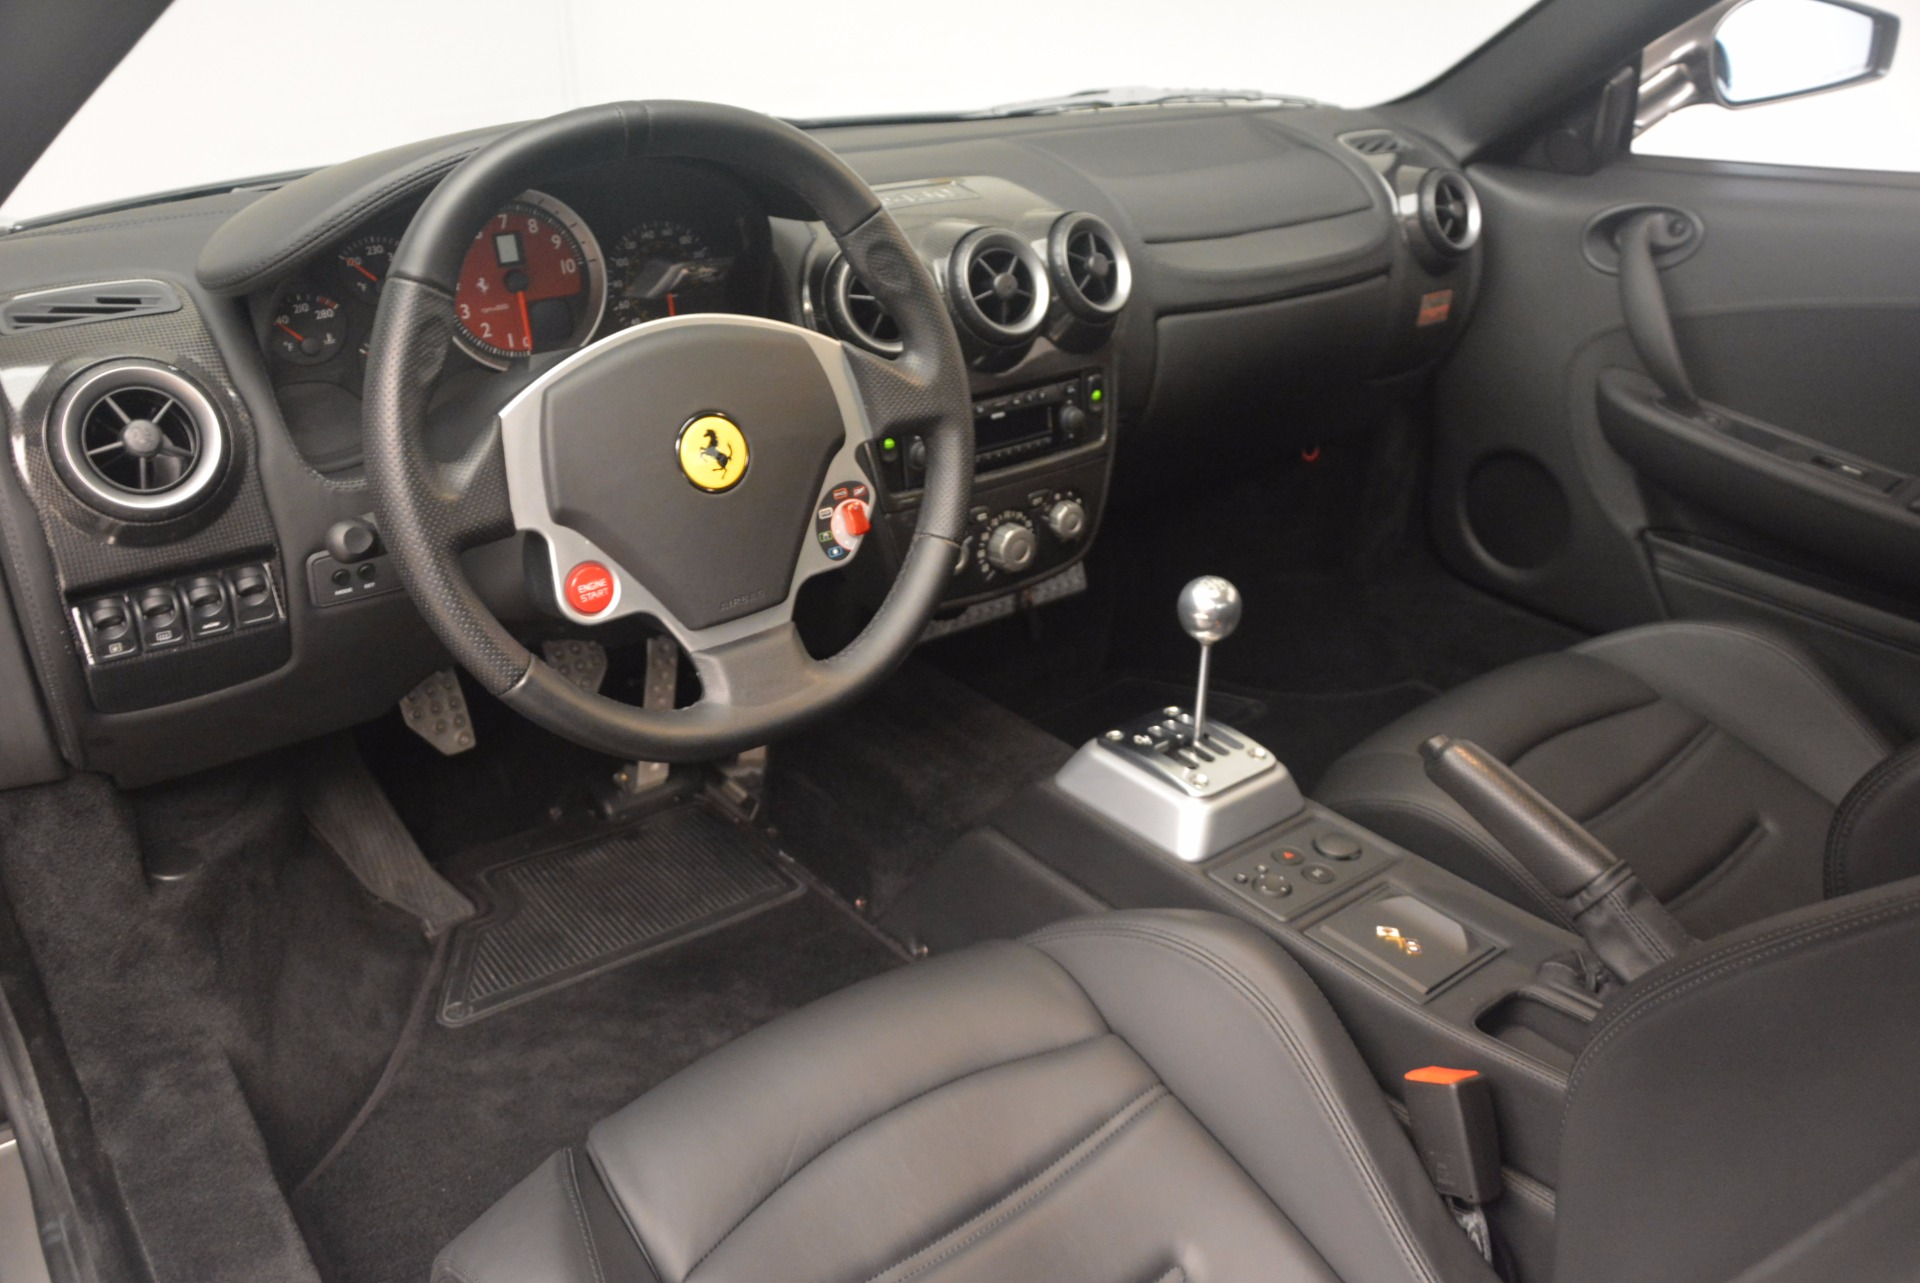 Used 2005 Ferrari F430 6-Speed Manual For Sale In Greenwich, CT 1286_p13